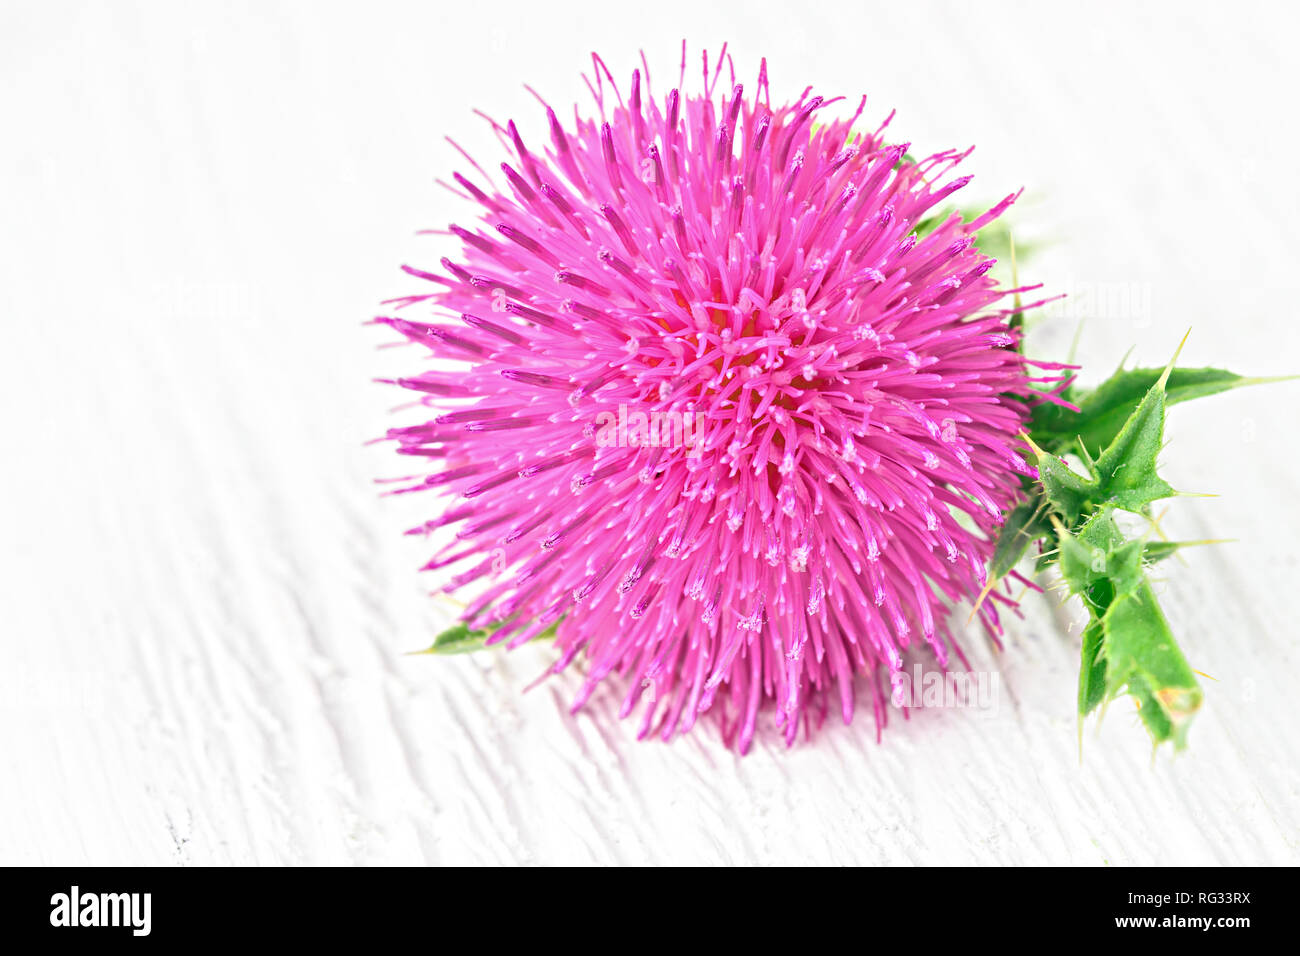 Silybum marianum (milk thistle) flowers on a white wooden table (selective focus).One of the most common uses of milk thistle is to treat liver proble - Stock Image